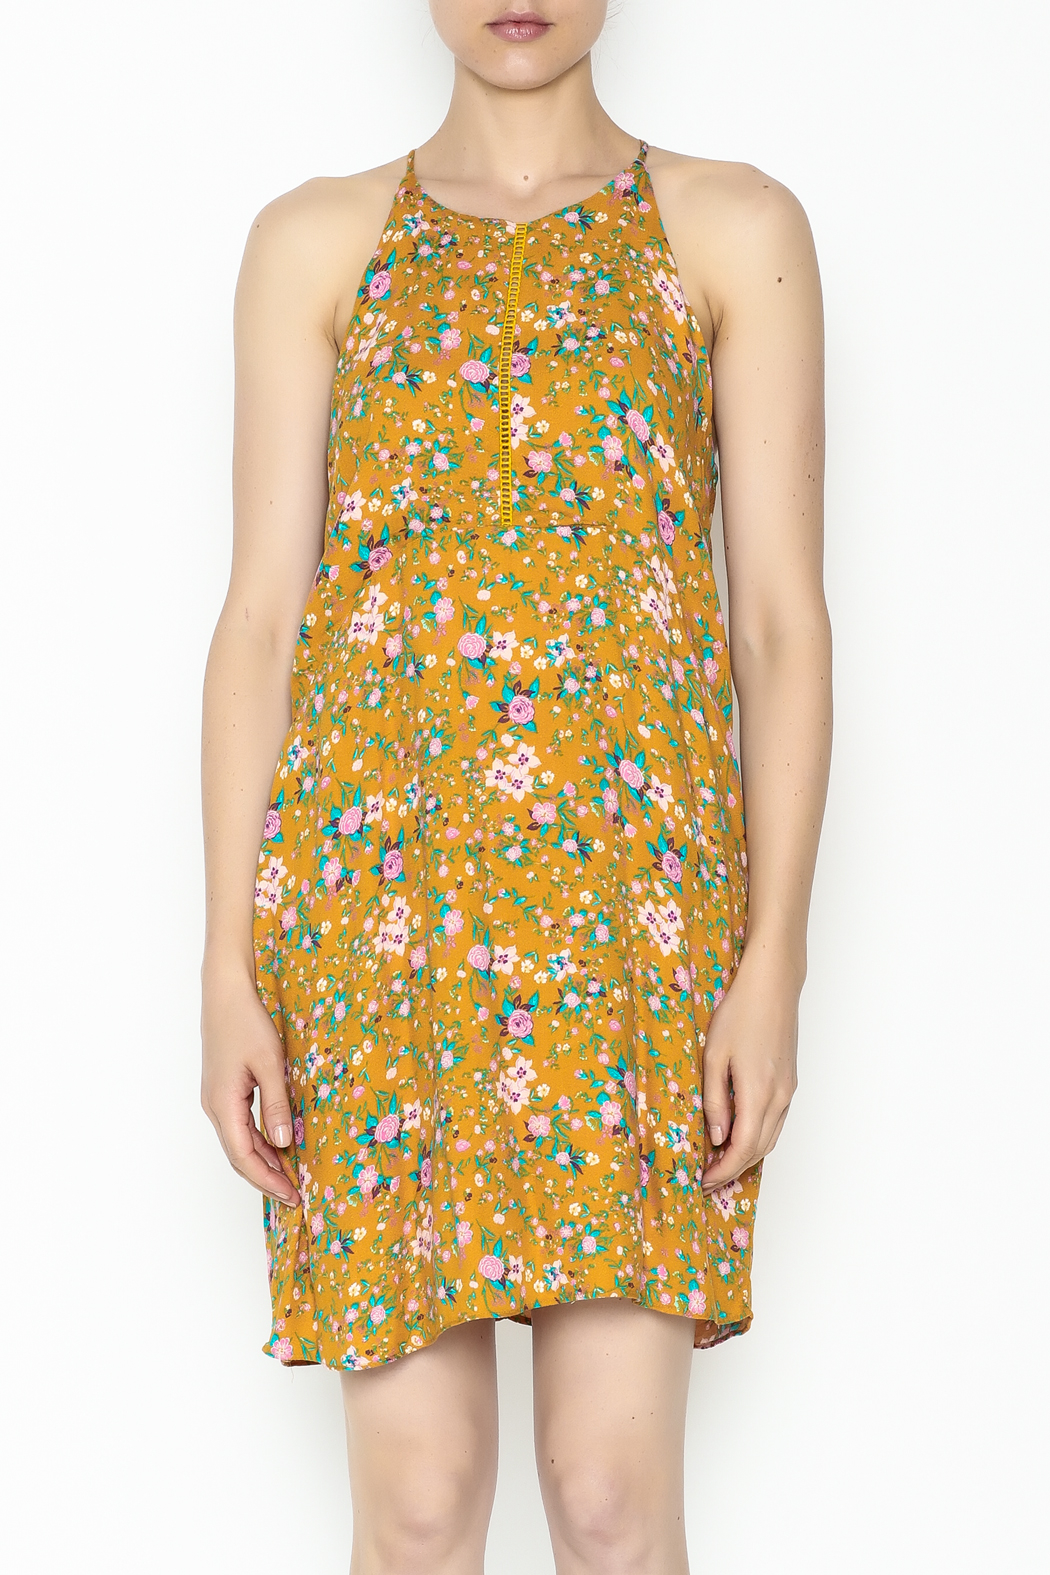 Everly Yellow Floral Shift Dress - Front Full Image